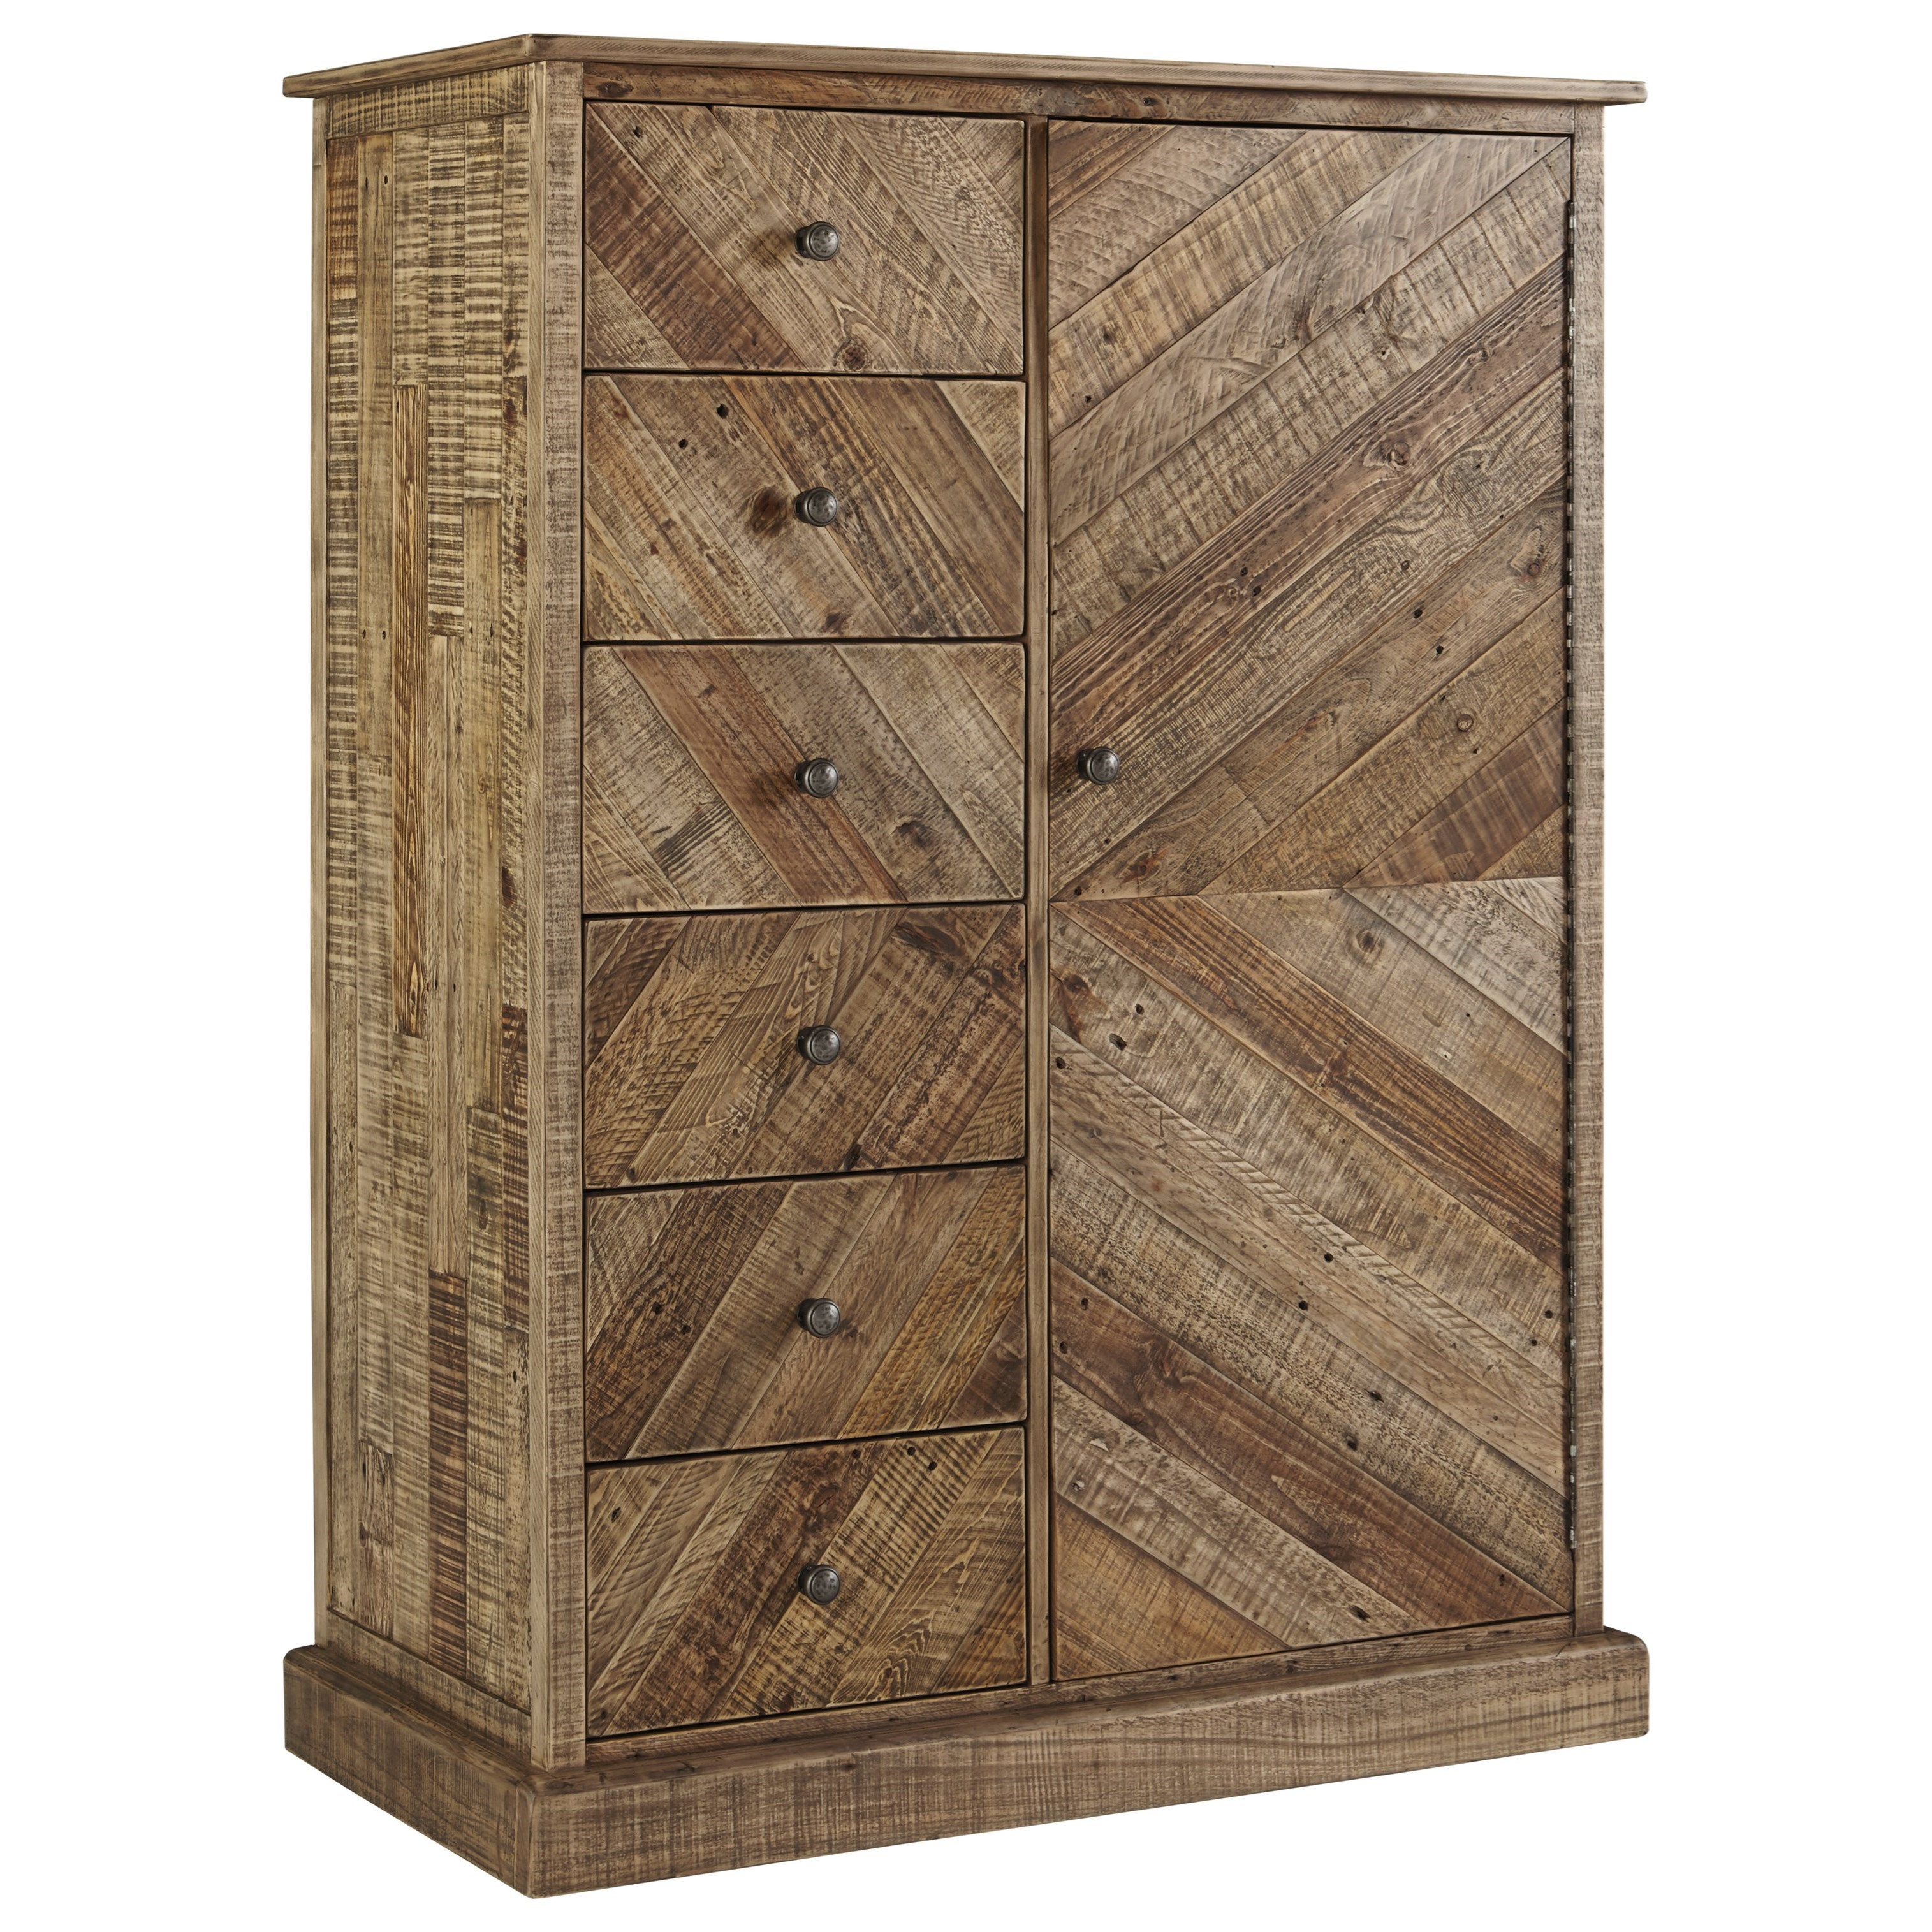 Grindleburg Door Chest by Signature Design by Ashley at Lapeer Furniture & Mattress Center